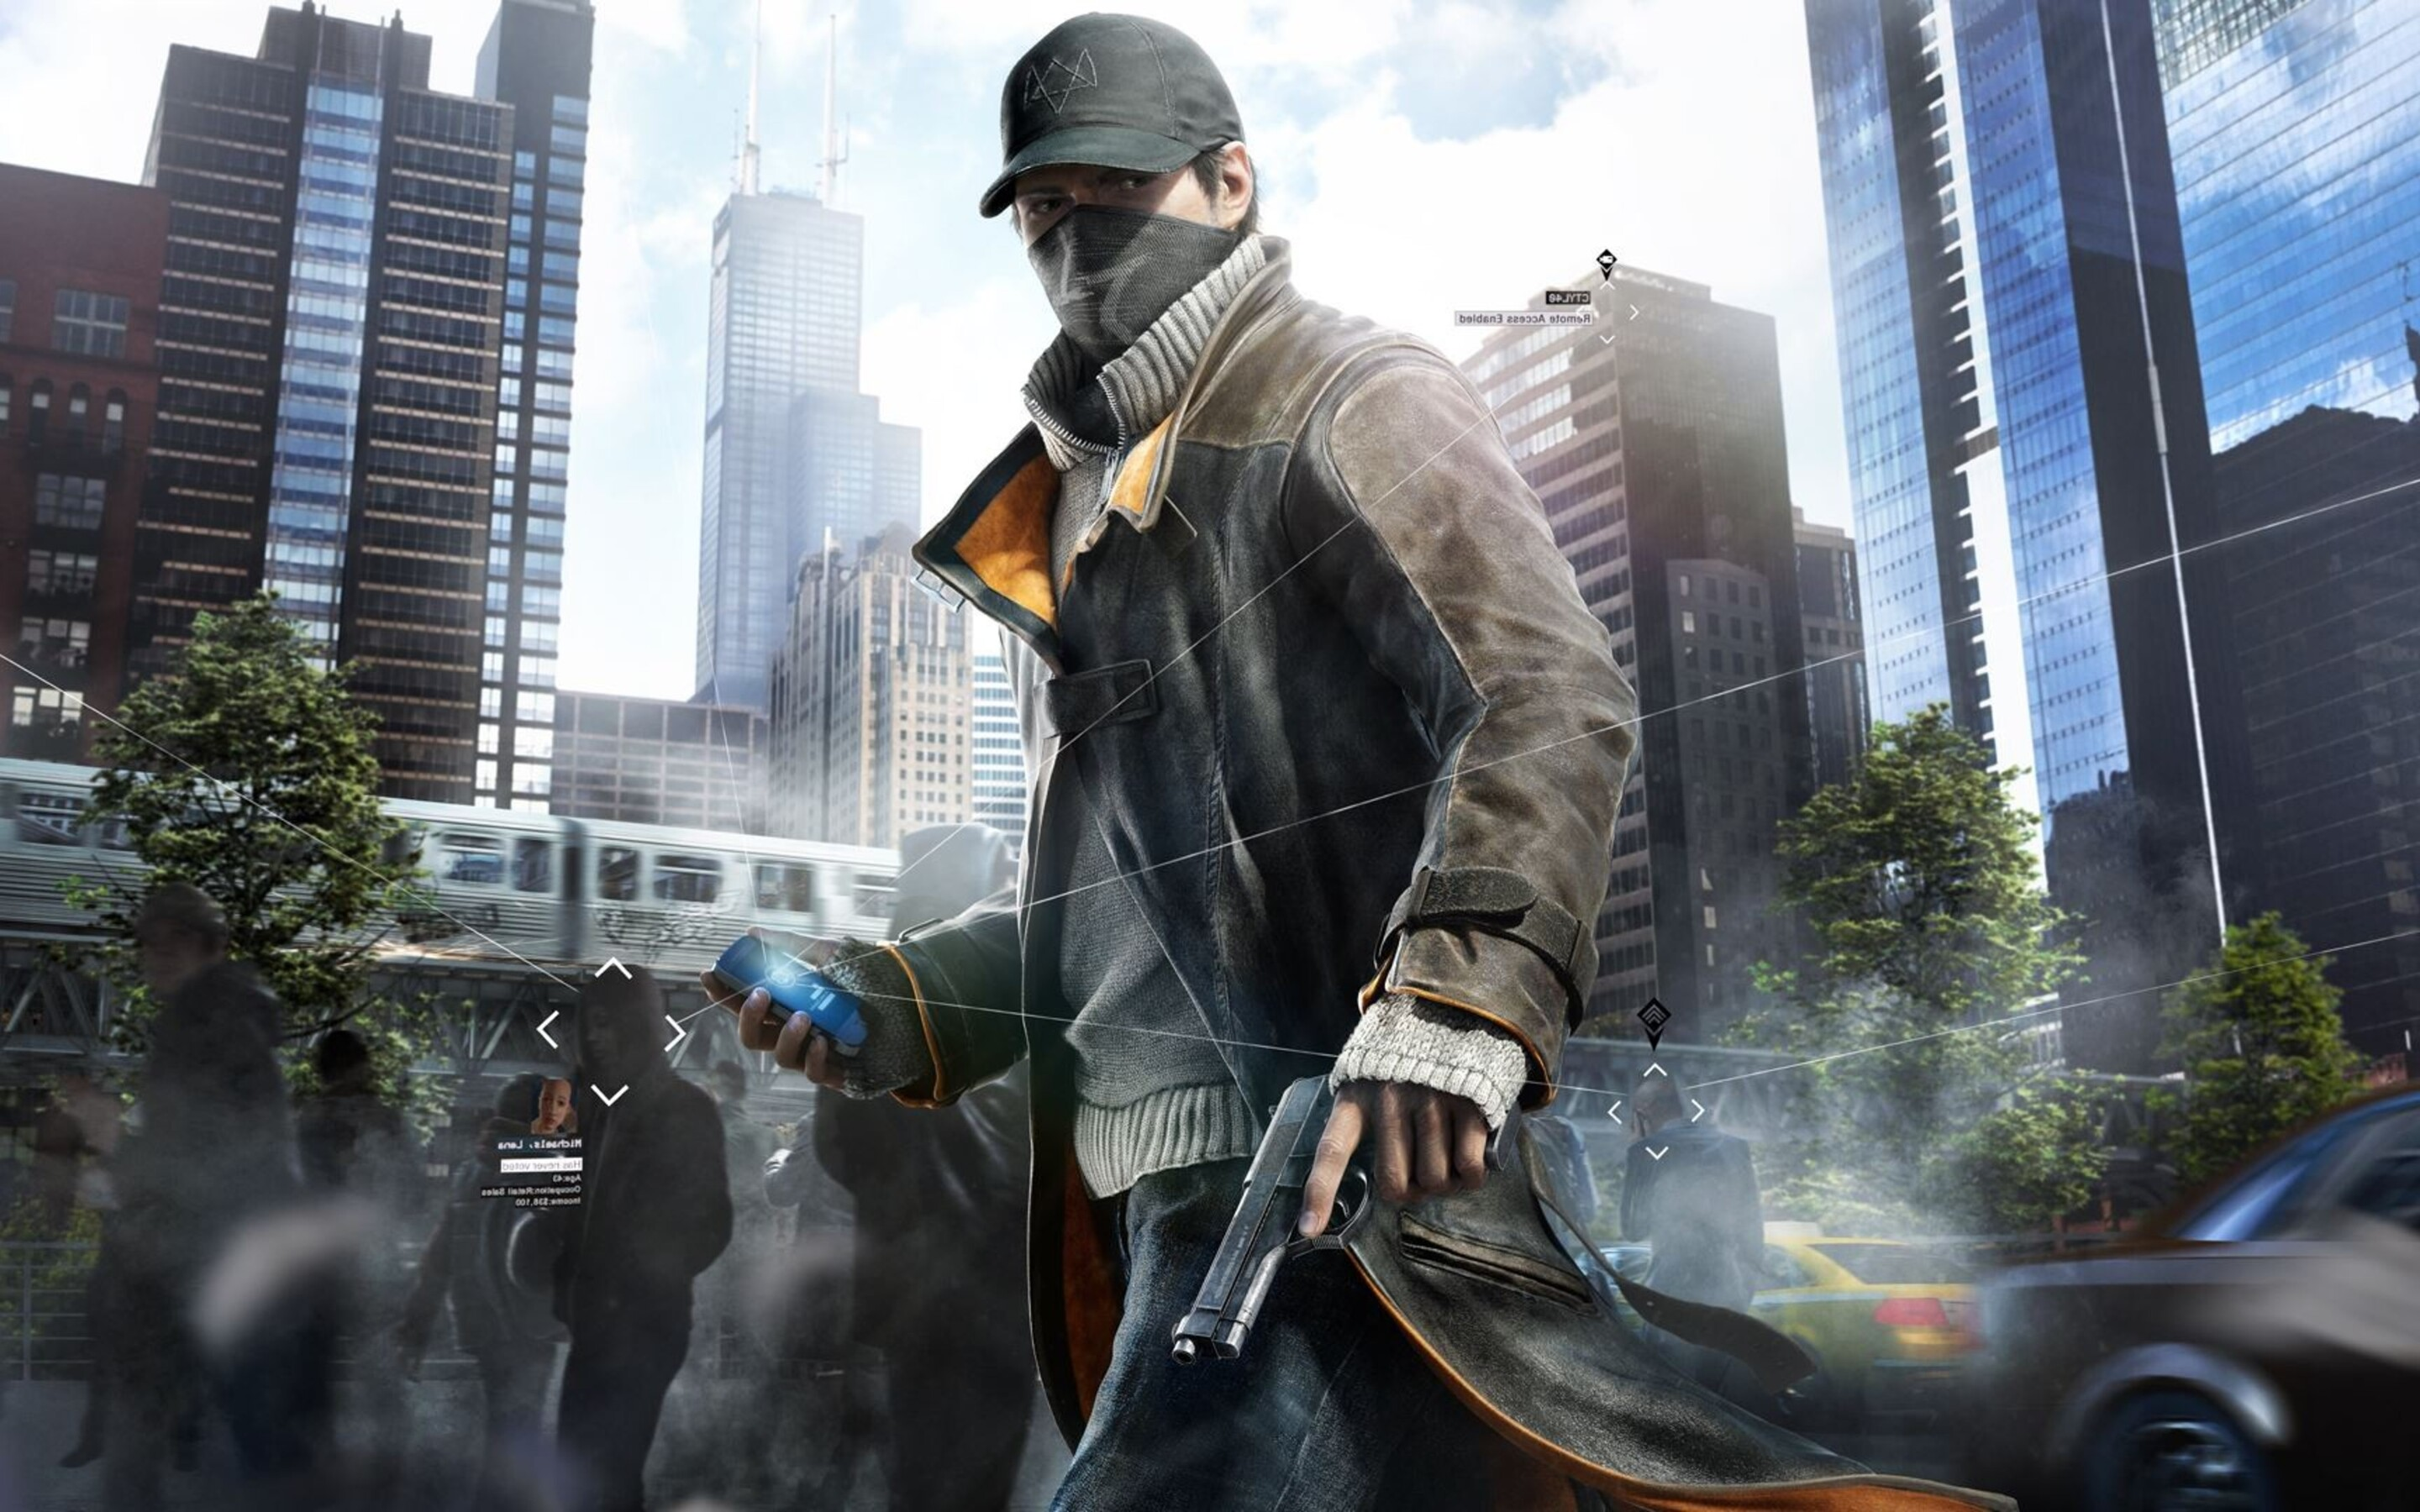 watch-dogs-aiden-pearce.jpg